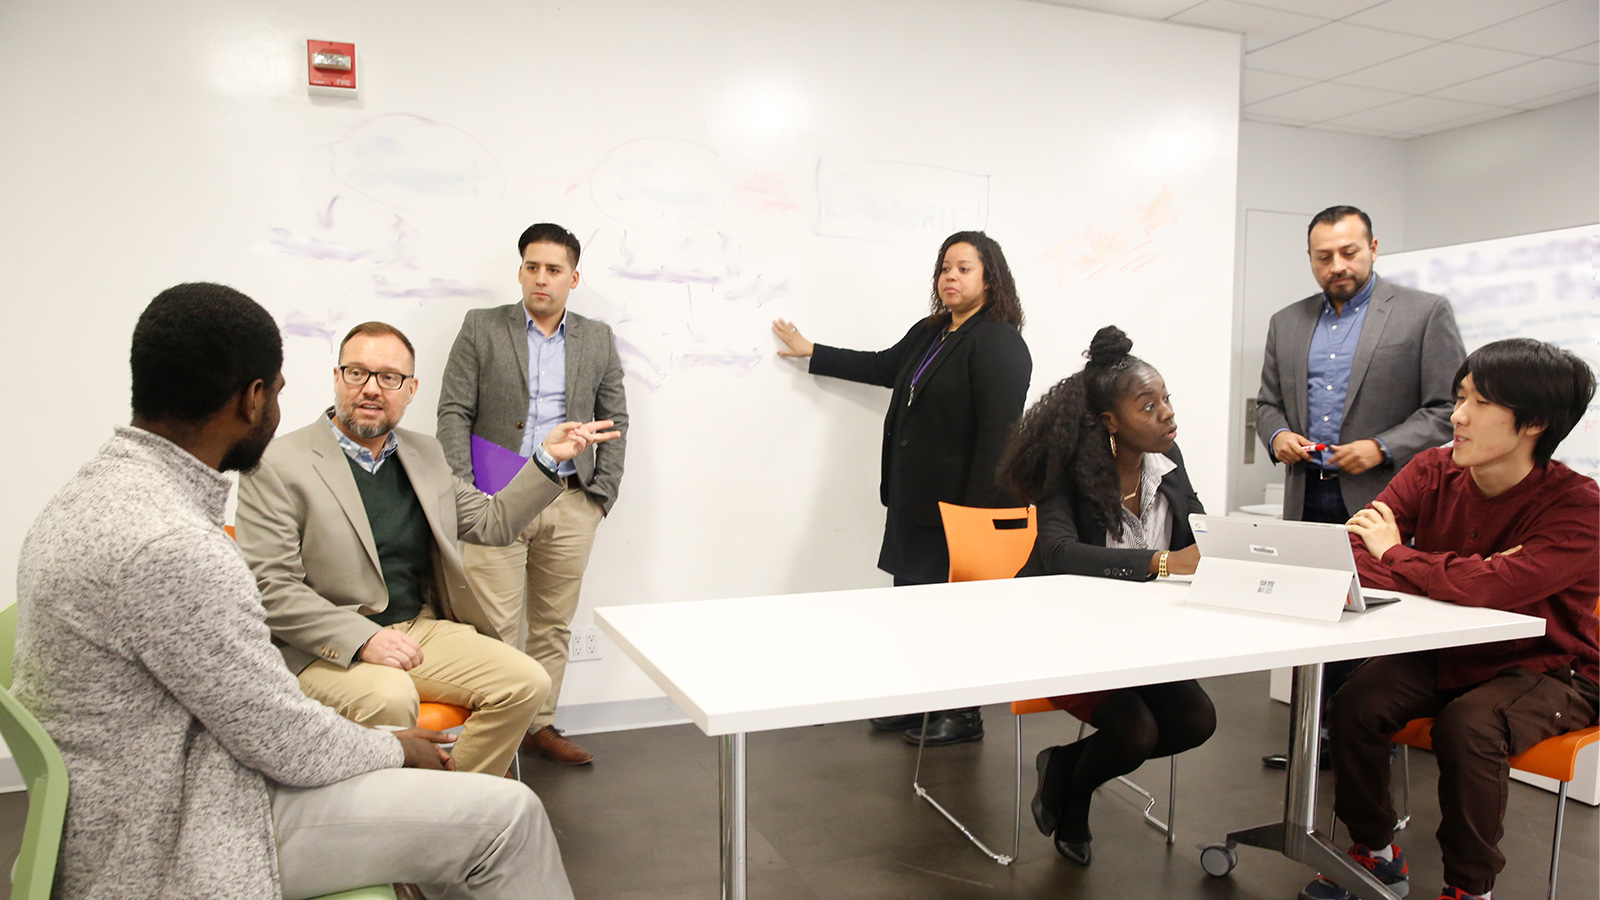 Hunter college faculty and students